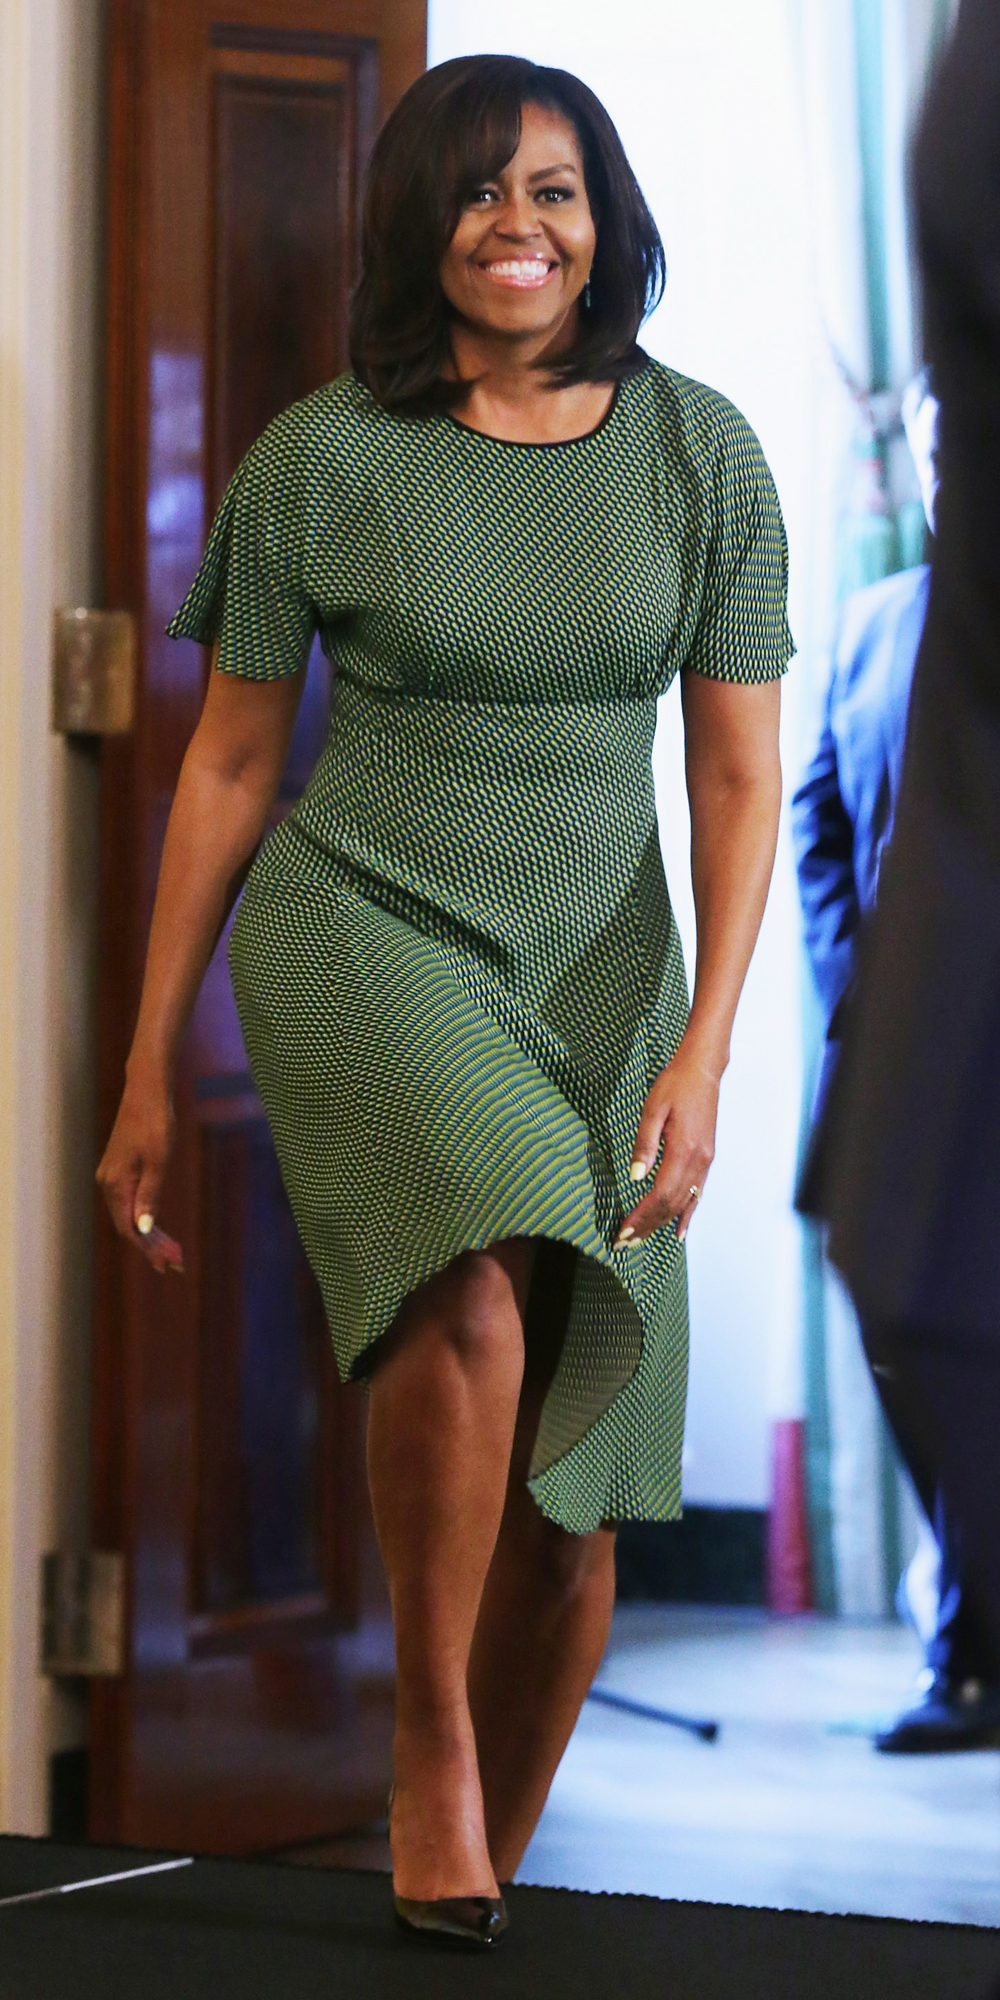 Michelle Obama Celebrates the Iranian New Year at the White House in a Springy Look